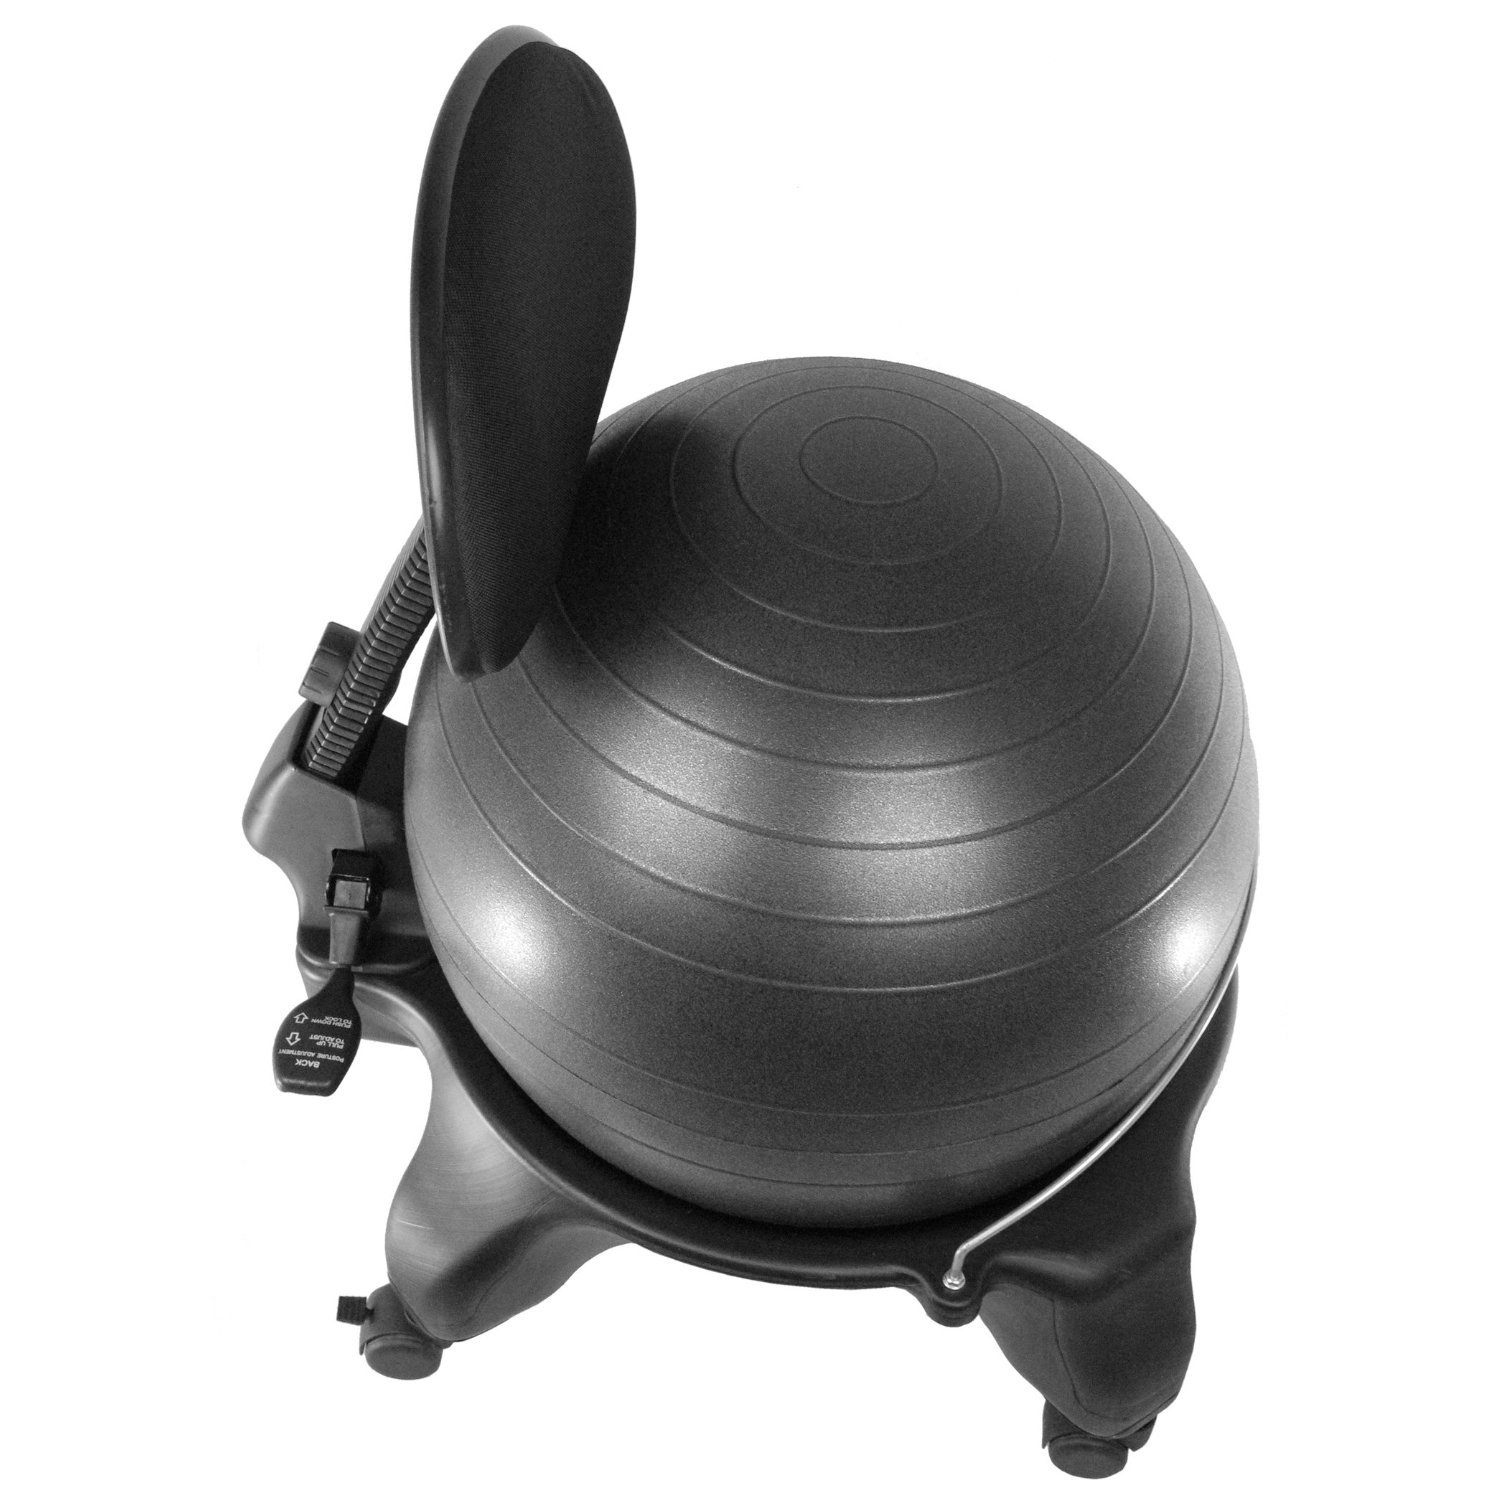 Sivan Adjustable Back Balance Ball Chair with Ball and Pump by Sivan Health and Fitness (Image #1)